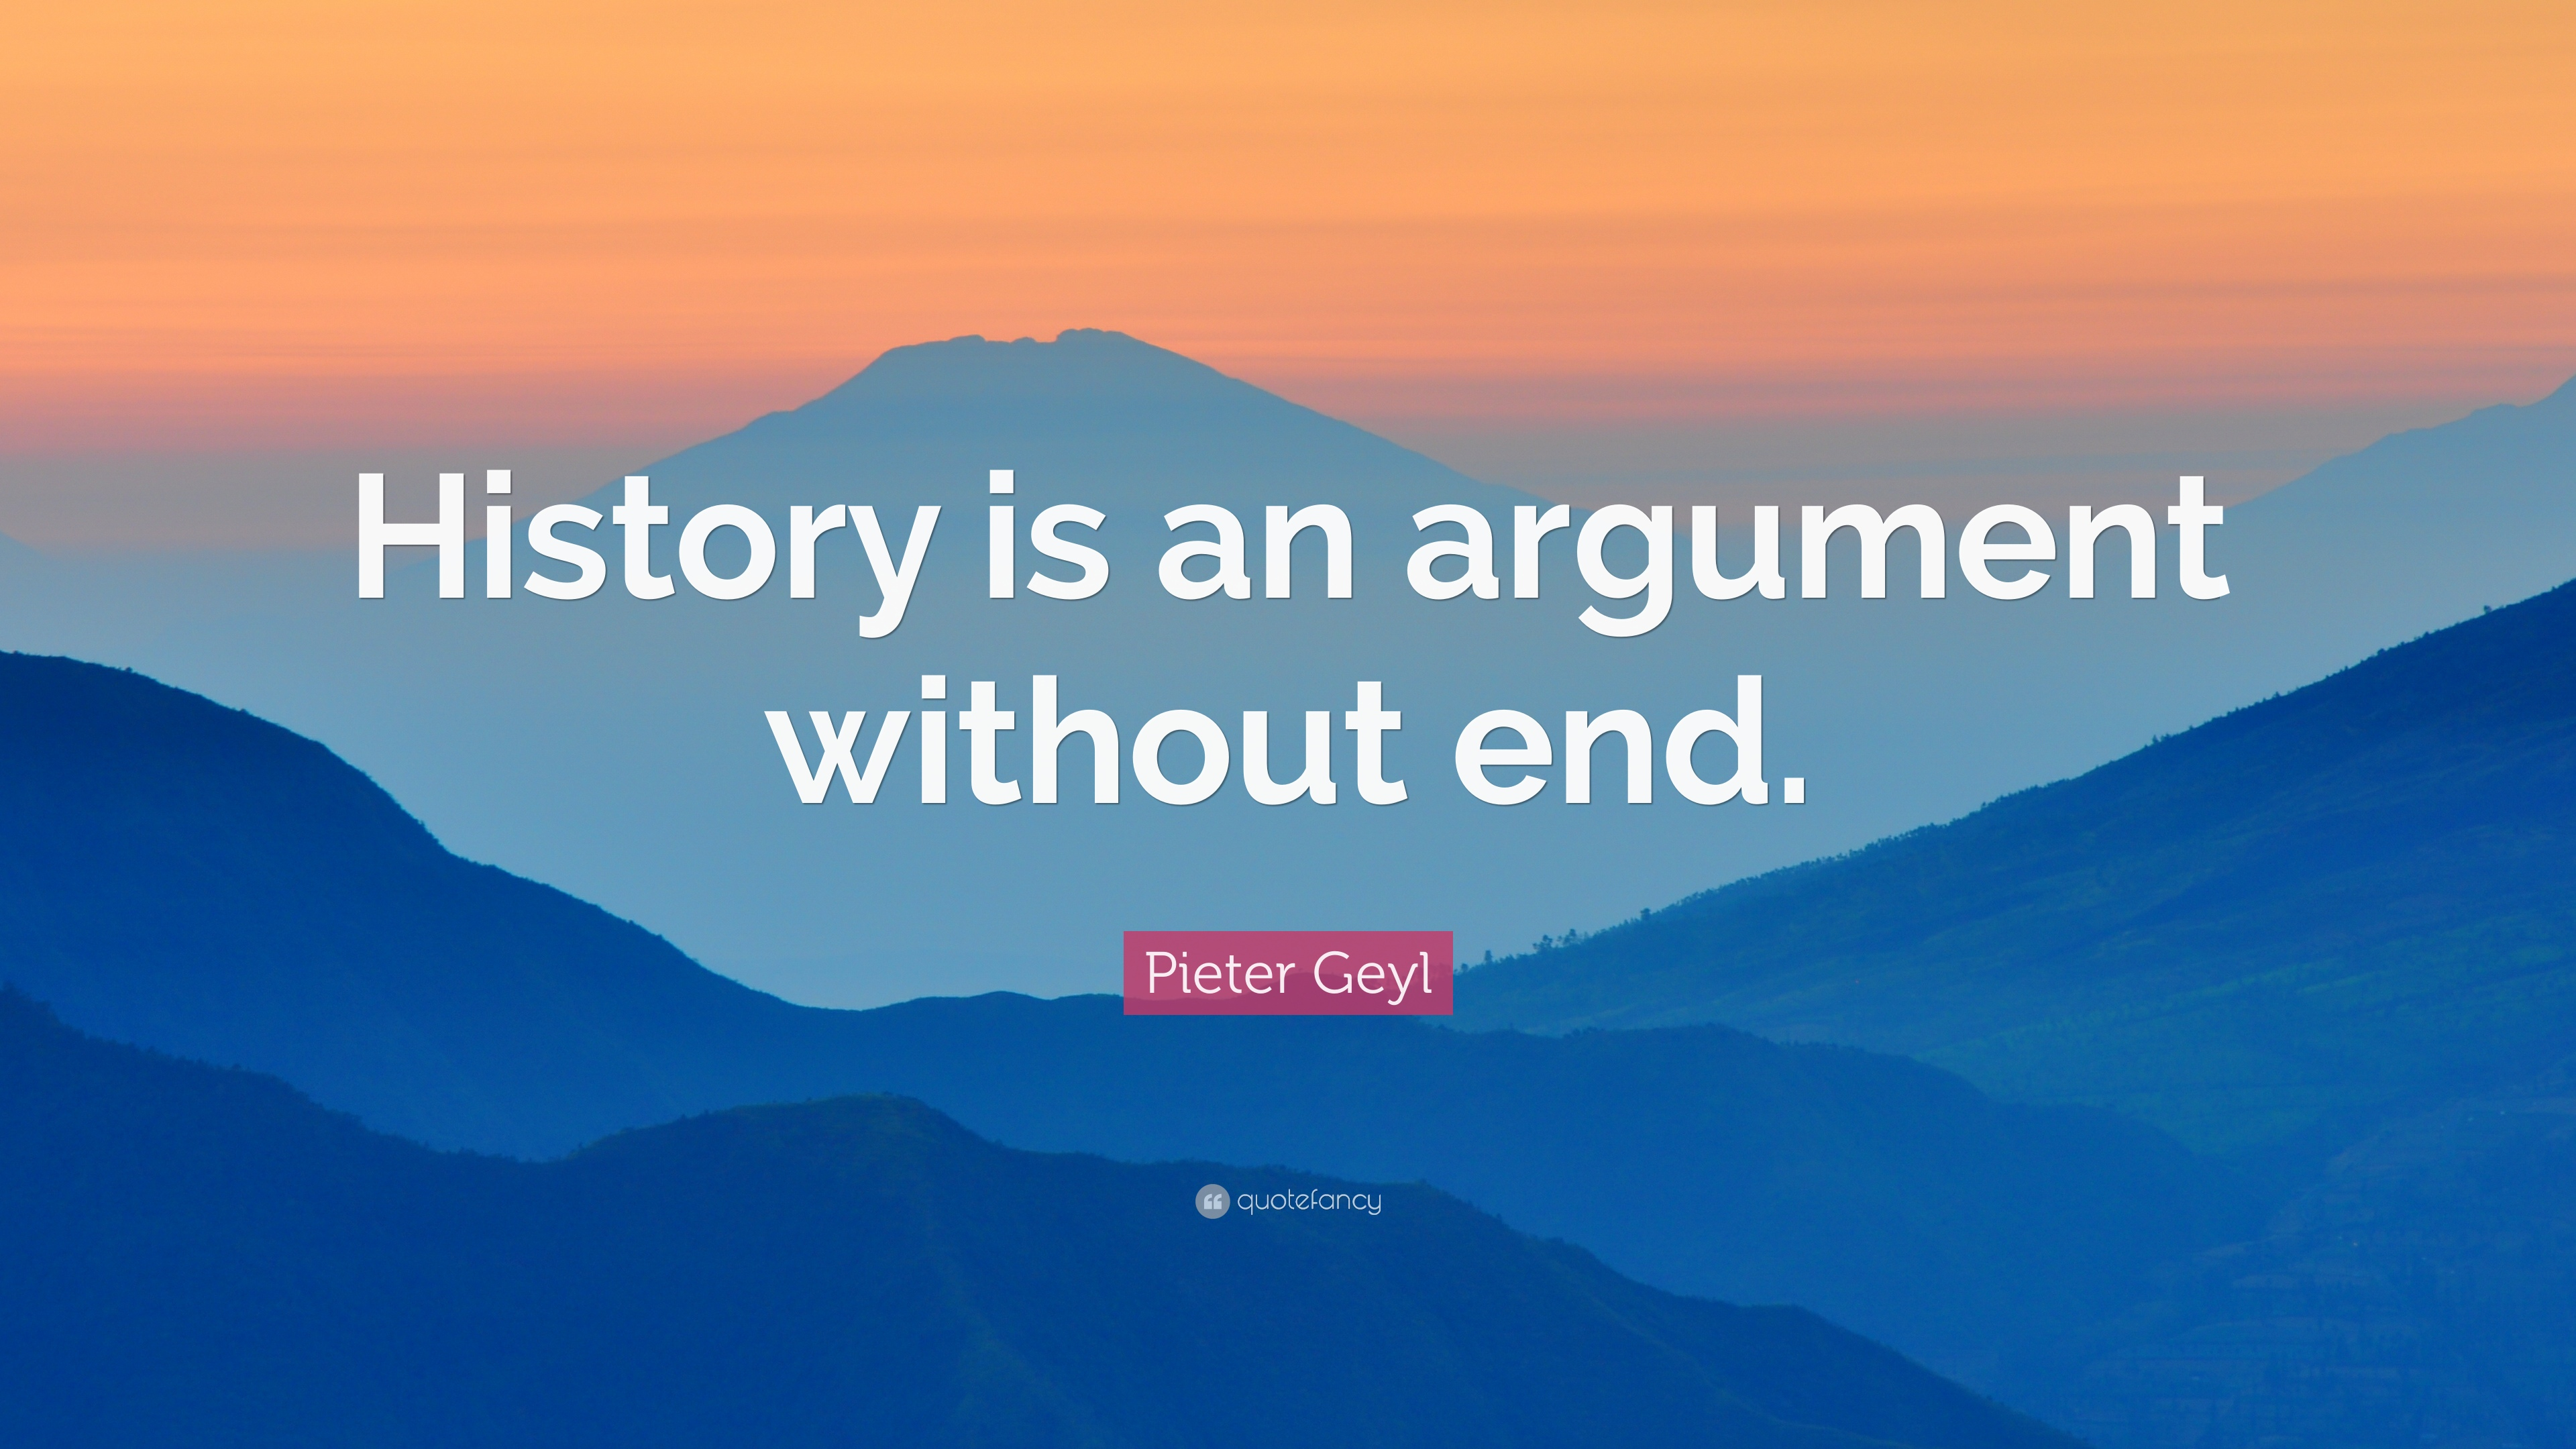 Pieter geyl quote history is an argument without end